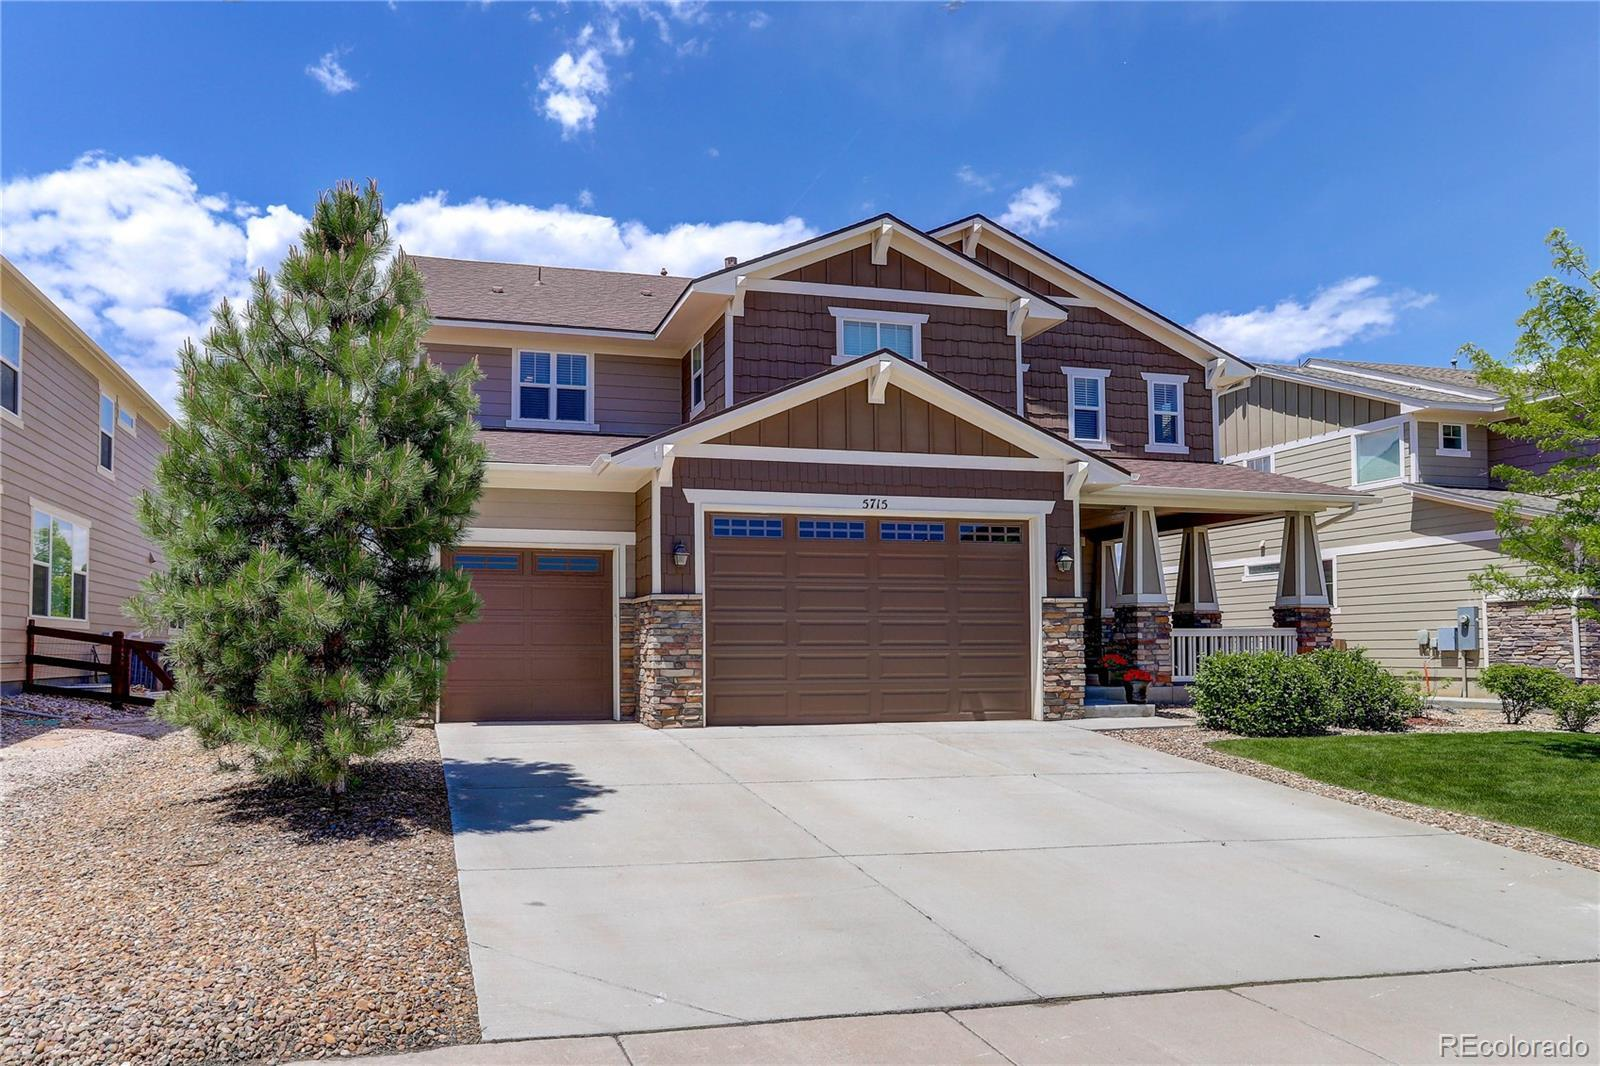 5715 Coppervein Circle, Fort Collins, CO 80524 - #: 7143025